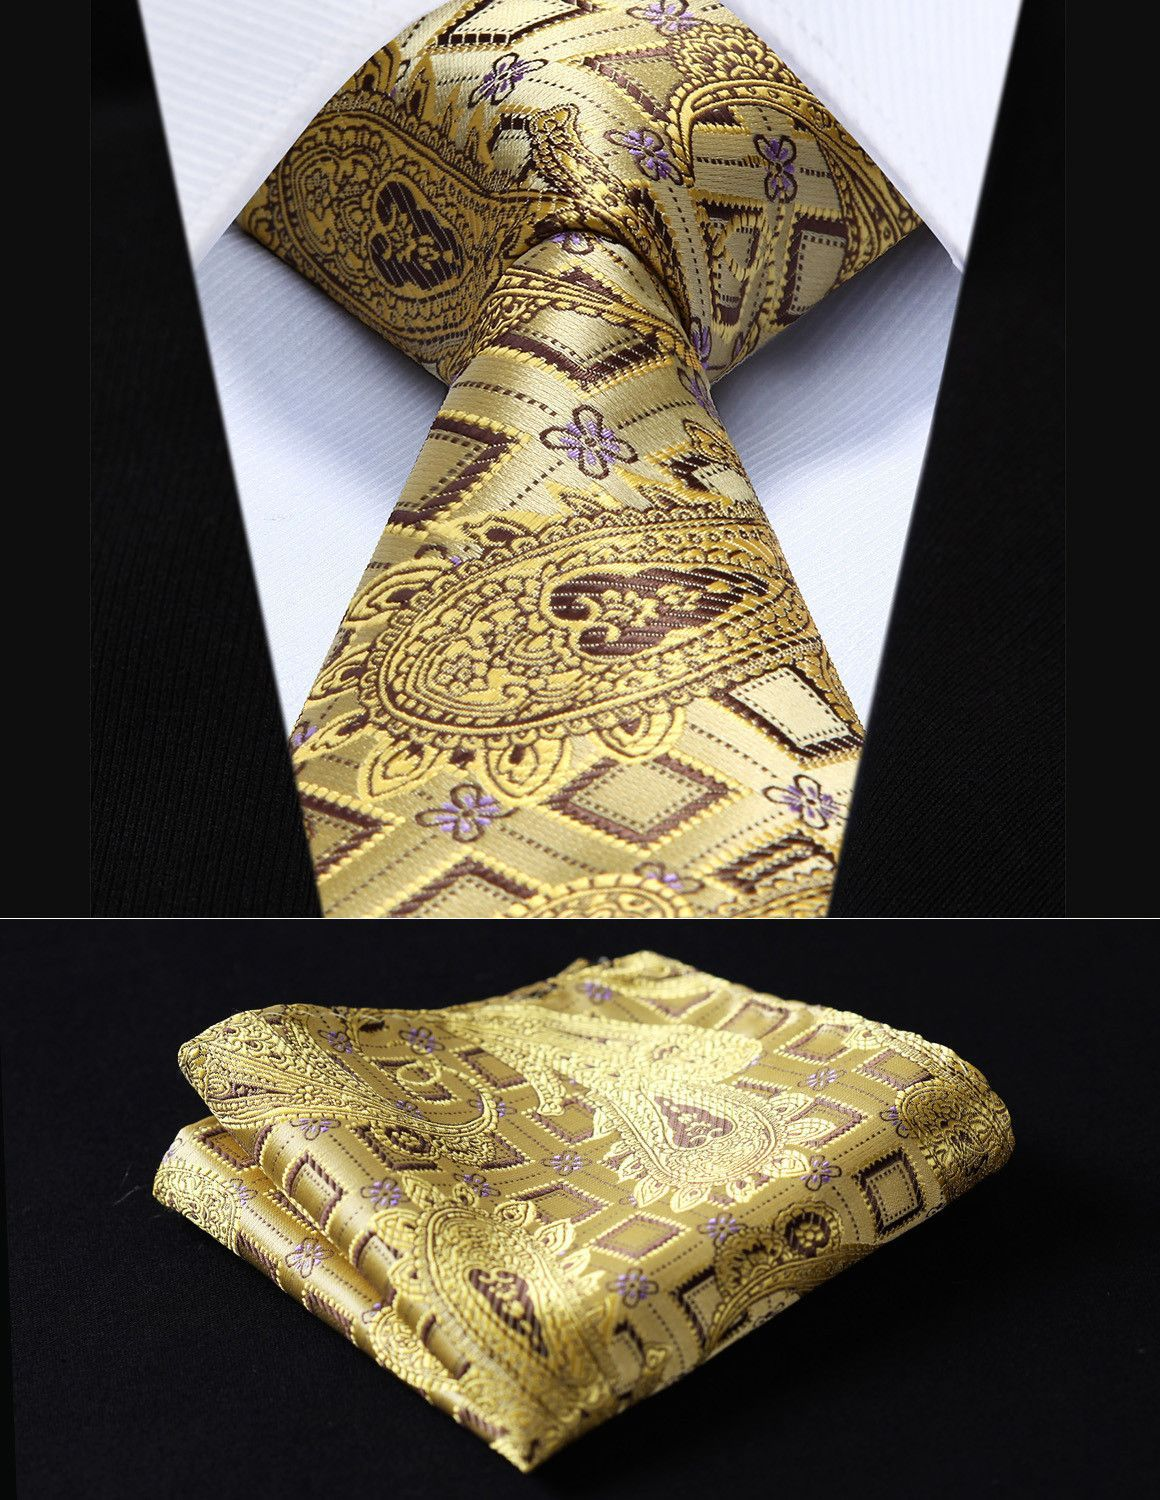 01666e93d6d3 Ancient Egyptian Gold Tie and Handkerchief View Signature Designer Style  Cufflinks at https://